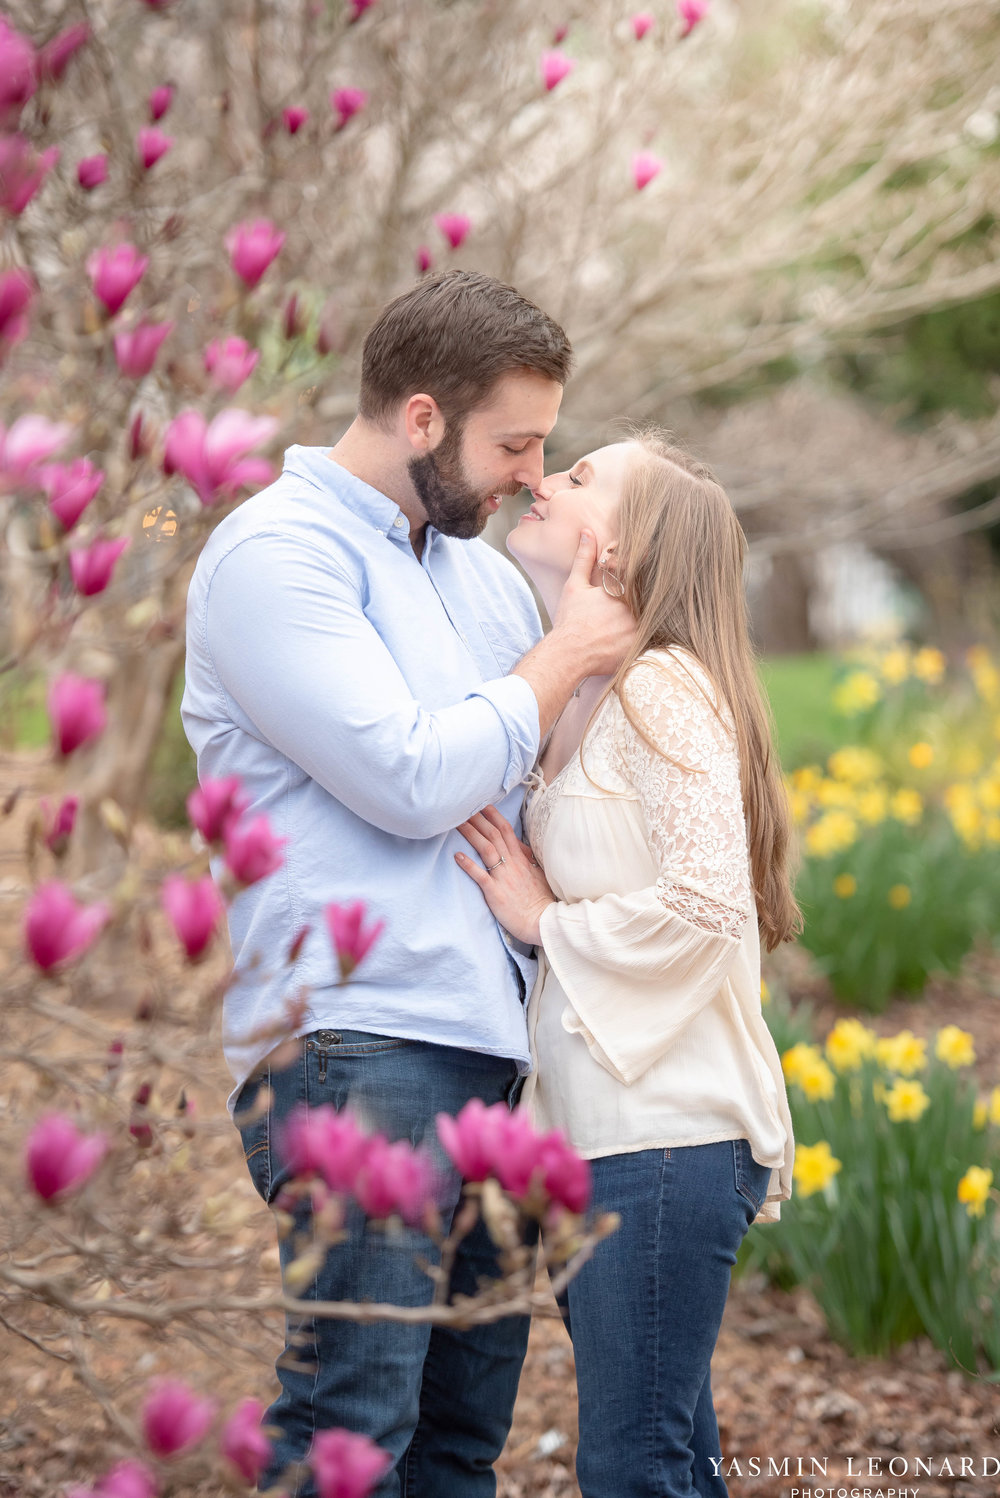 Engagement Session at Tanglewood - Spring Engagement Session - Engagement Session Ideas - Engagement Pictures - What to Wear for Engagement Pictures - Yasmin Leonard Photography-15.jpg